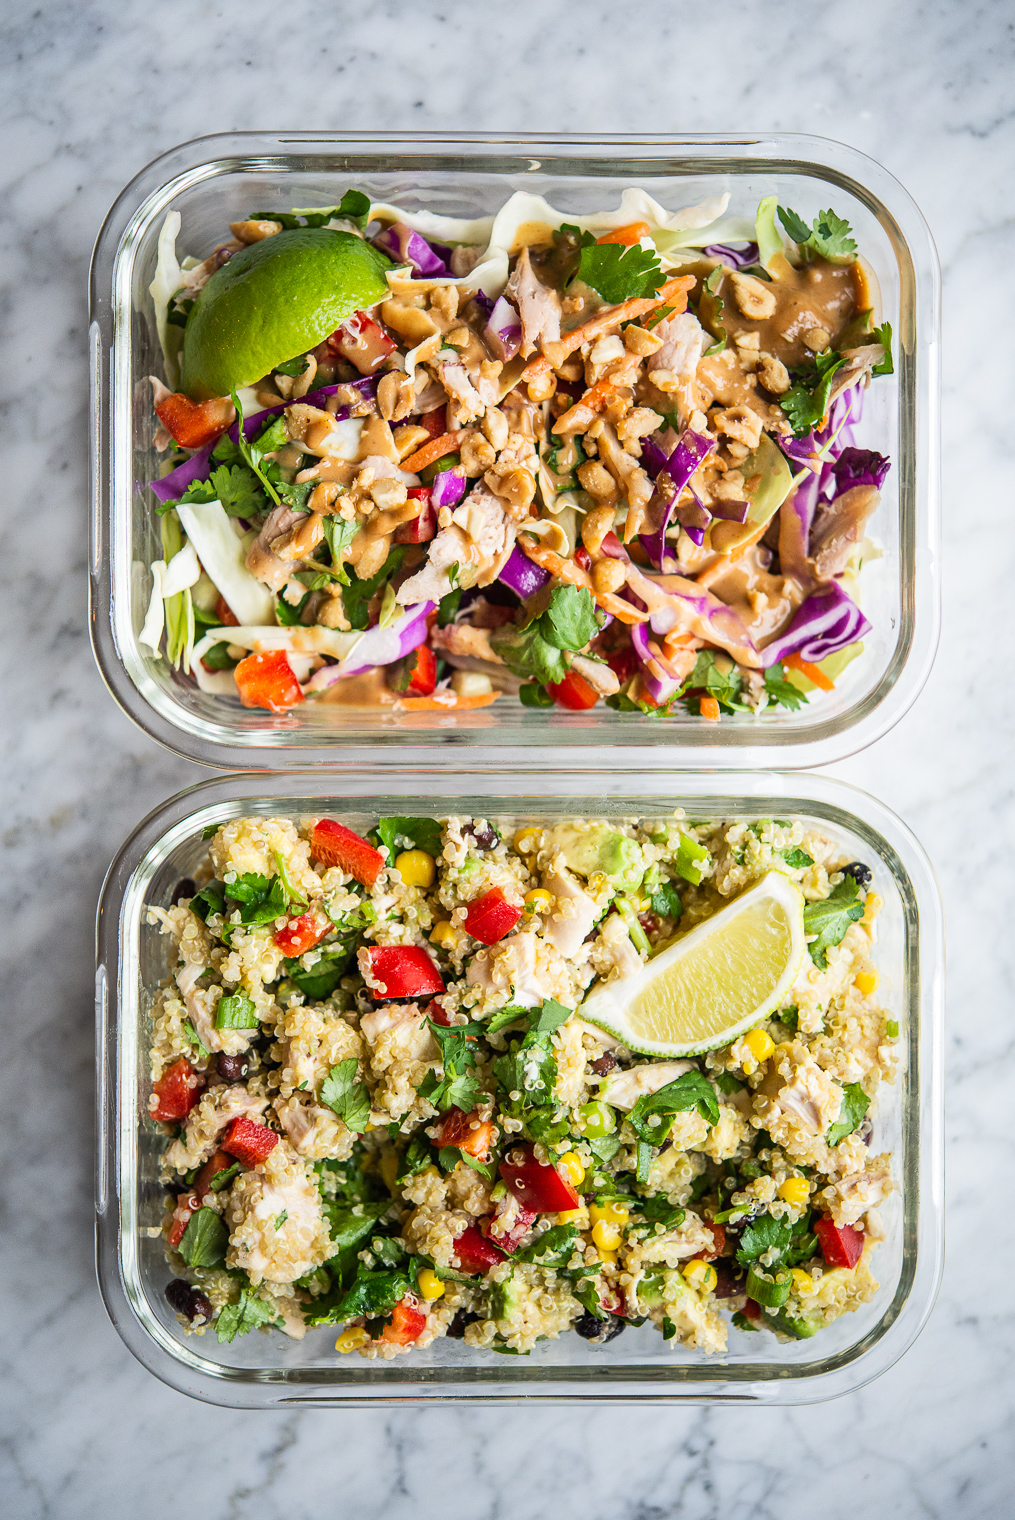 thai chicken salad and southwestern quinoa salad in clear individual portion containers on a marble surface